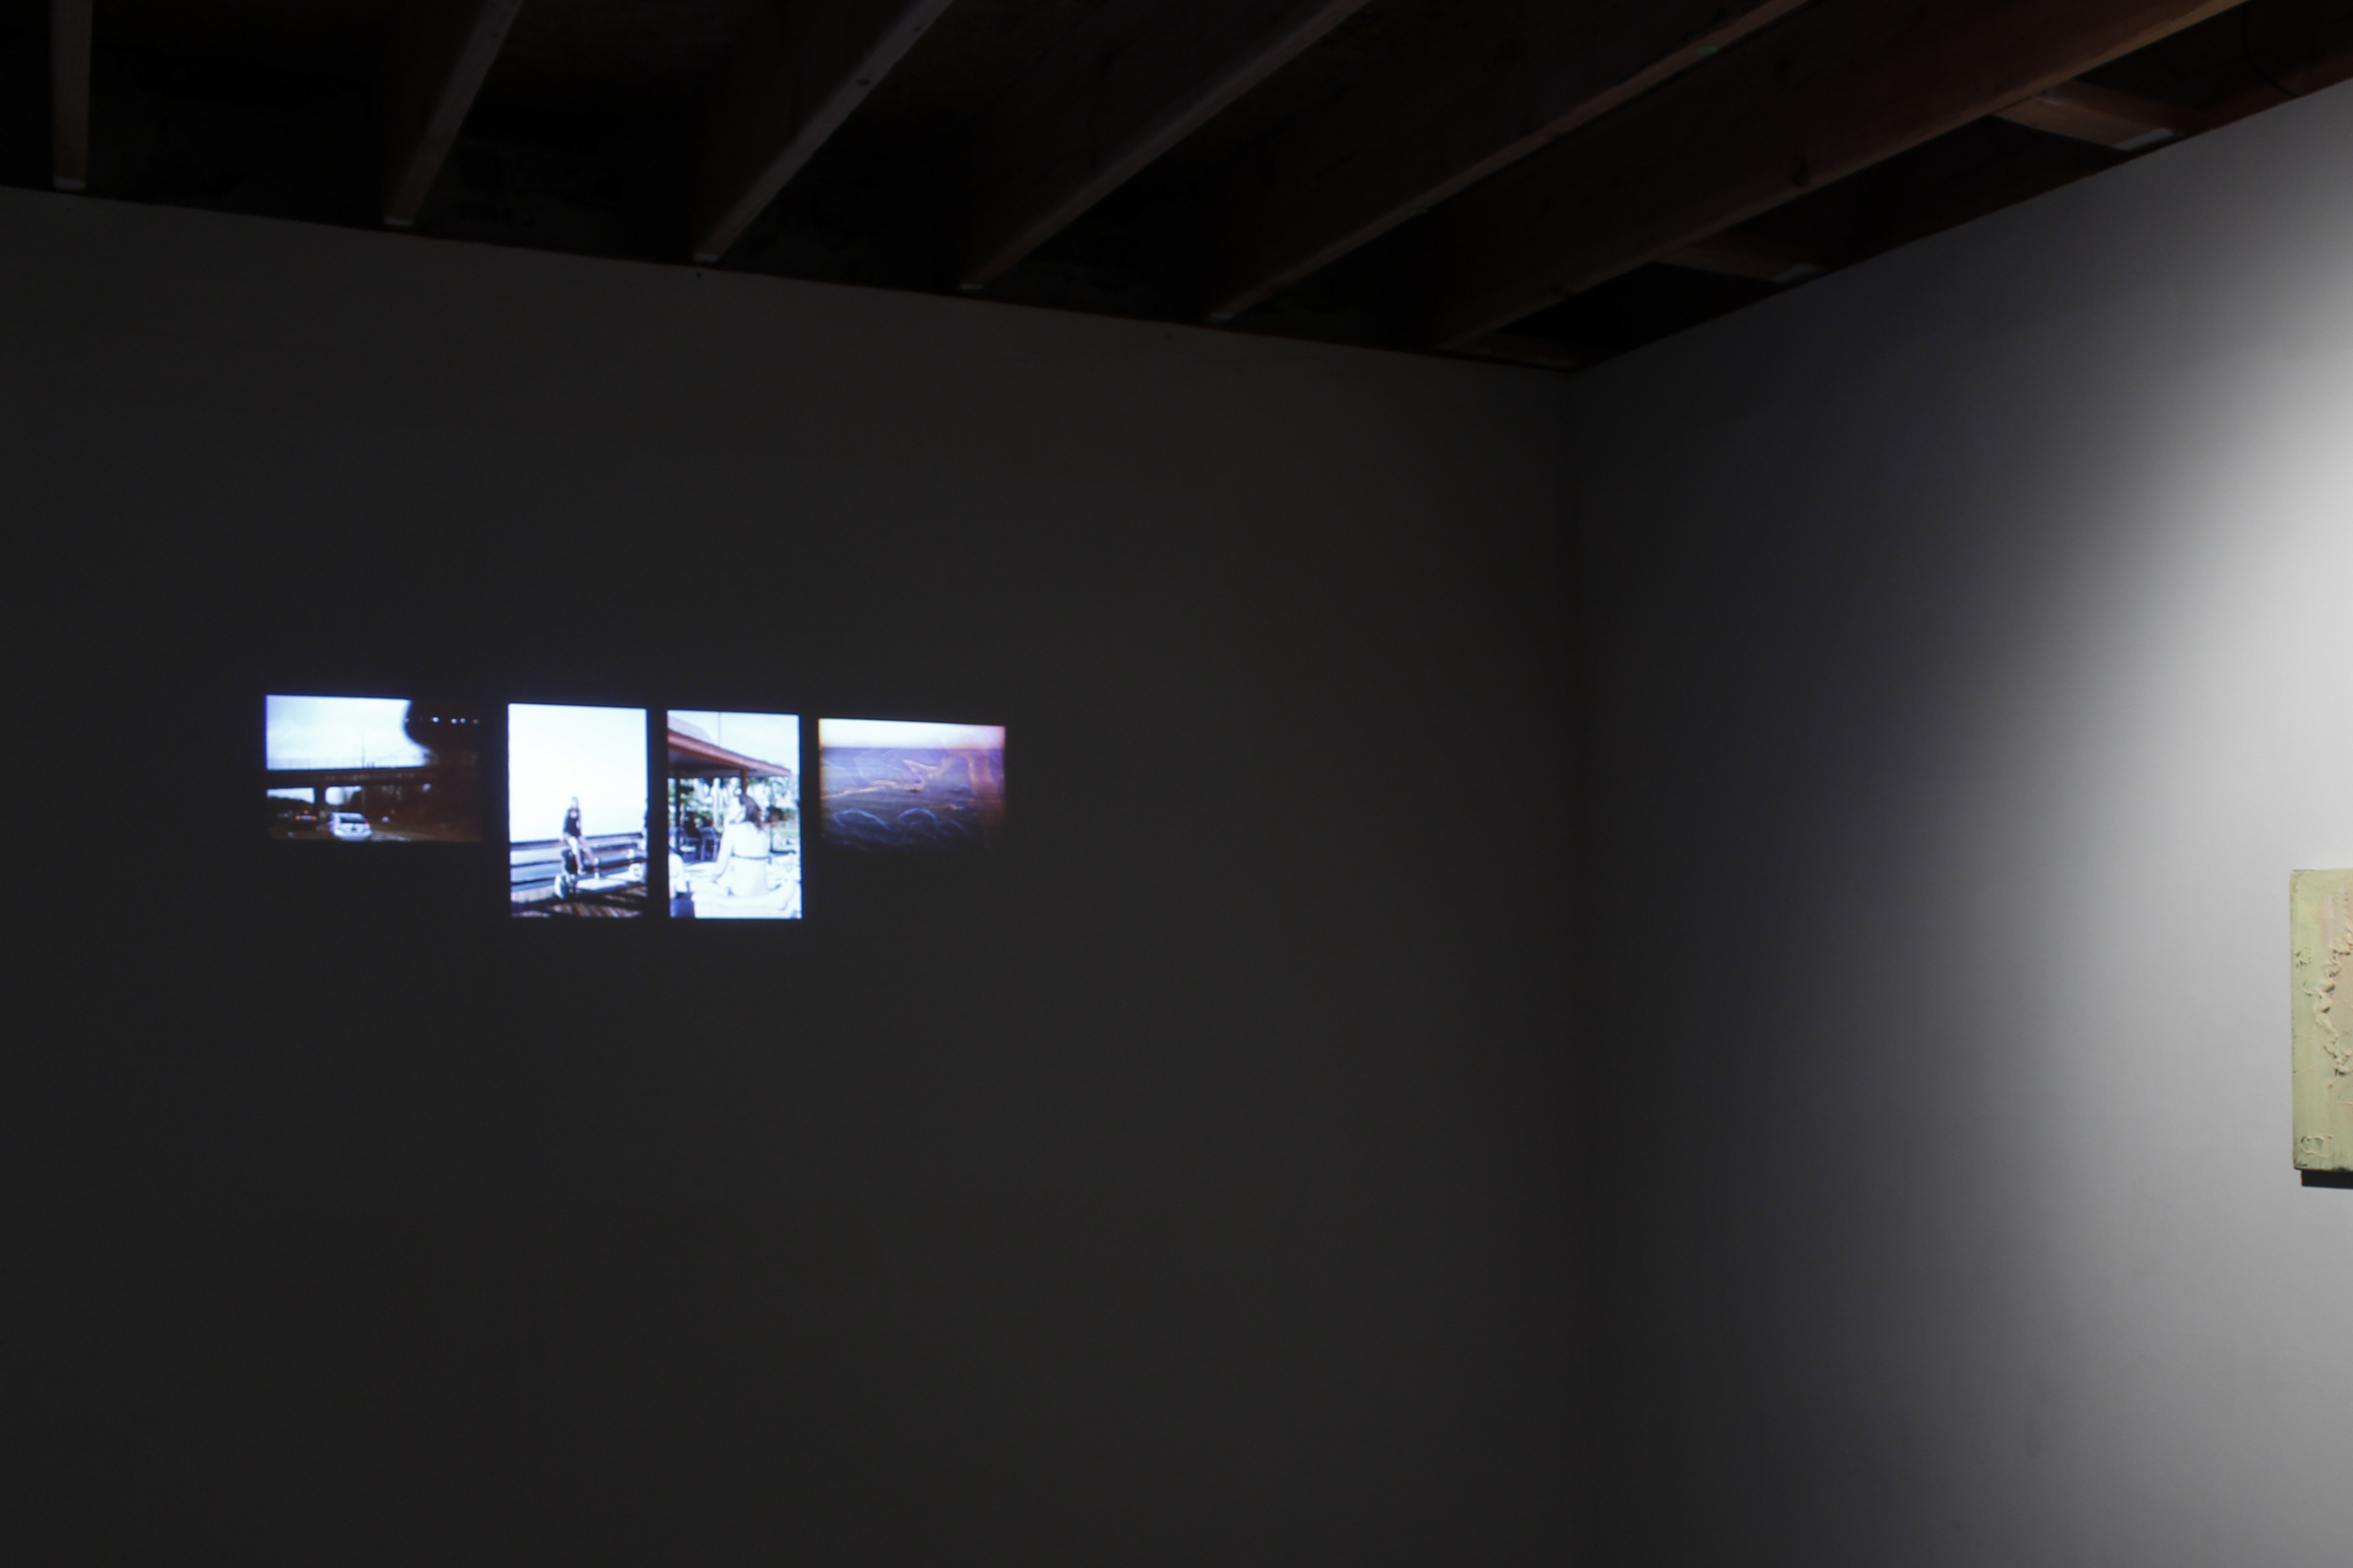 Installation view, Unemployed, 2005-2015, slideshow on single channel projection